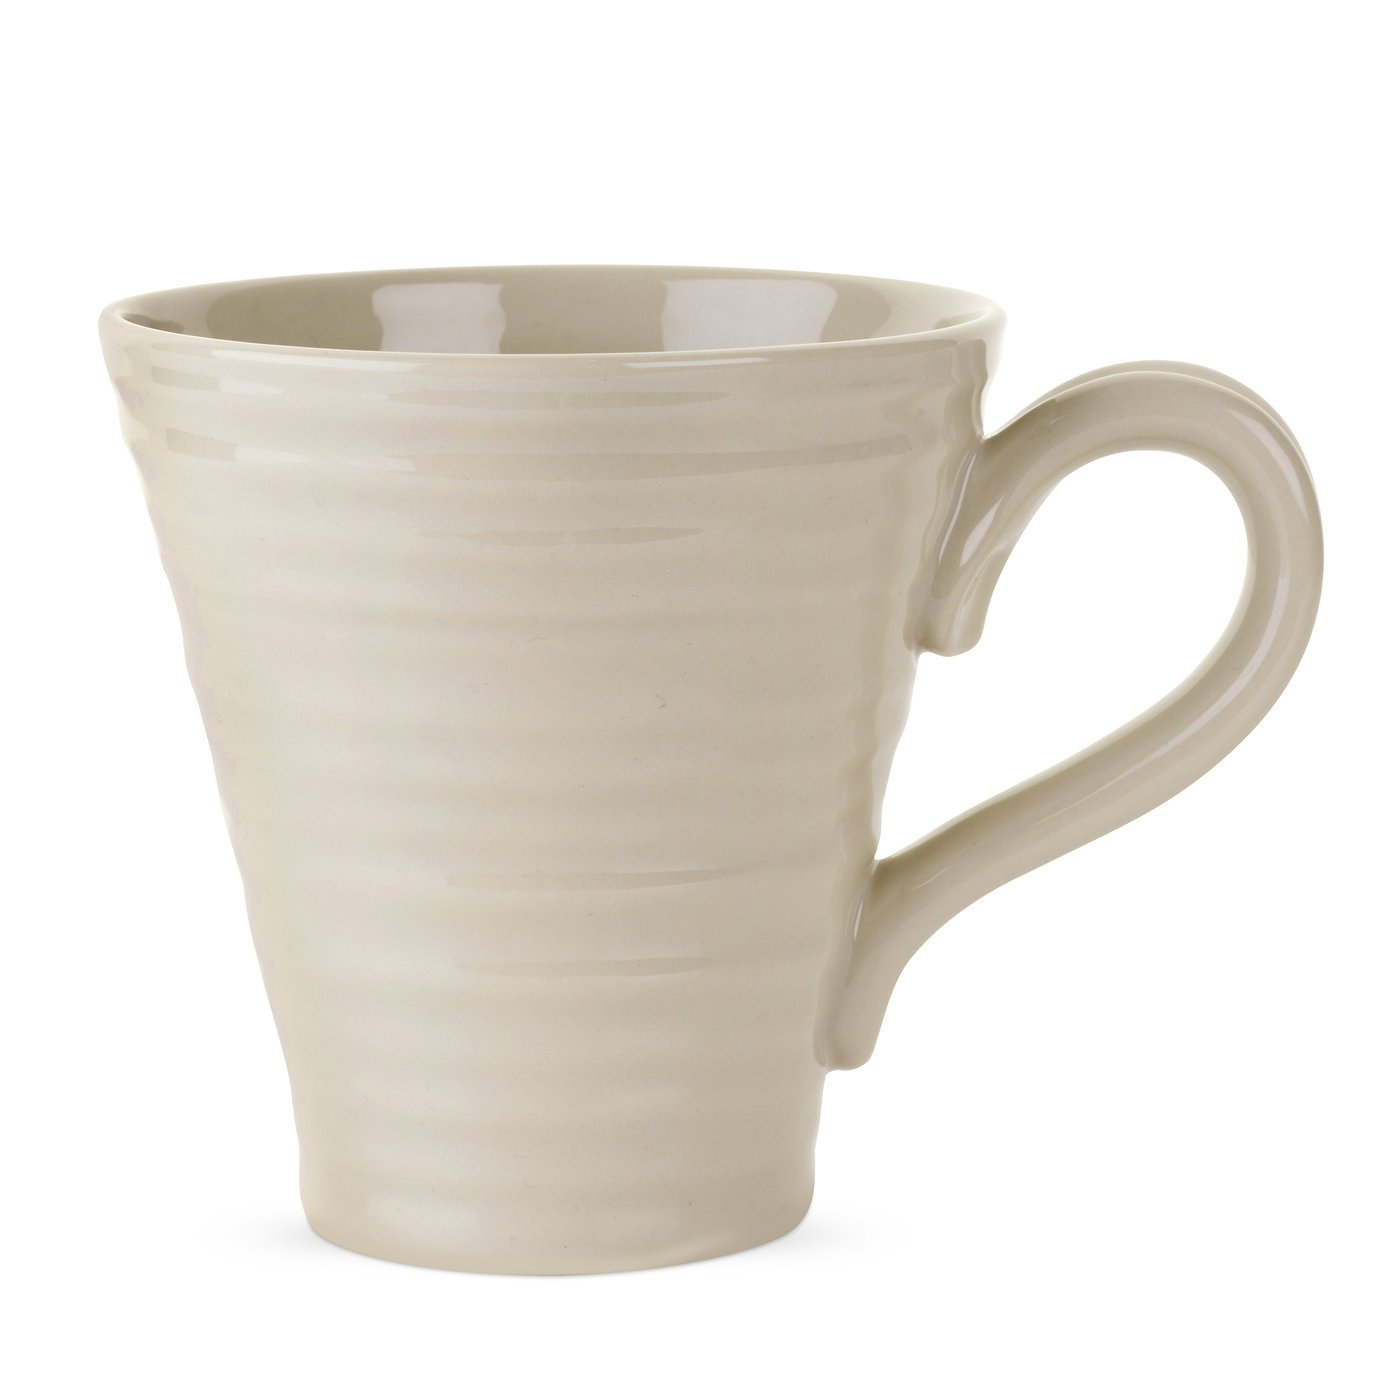 Sophie Conran Pebble Mug Set of 4